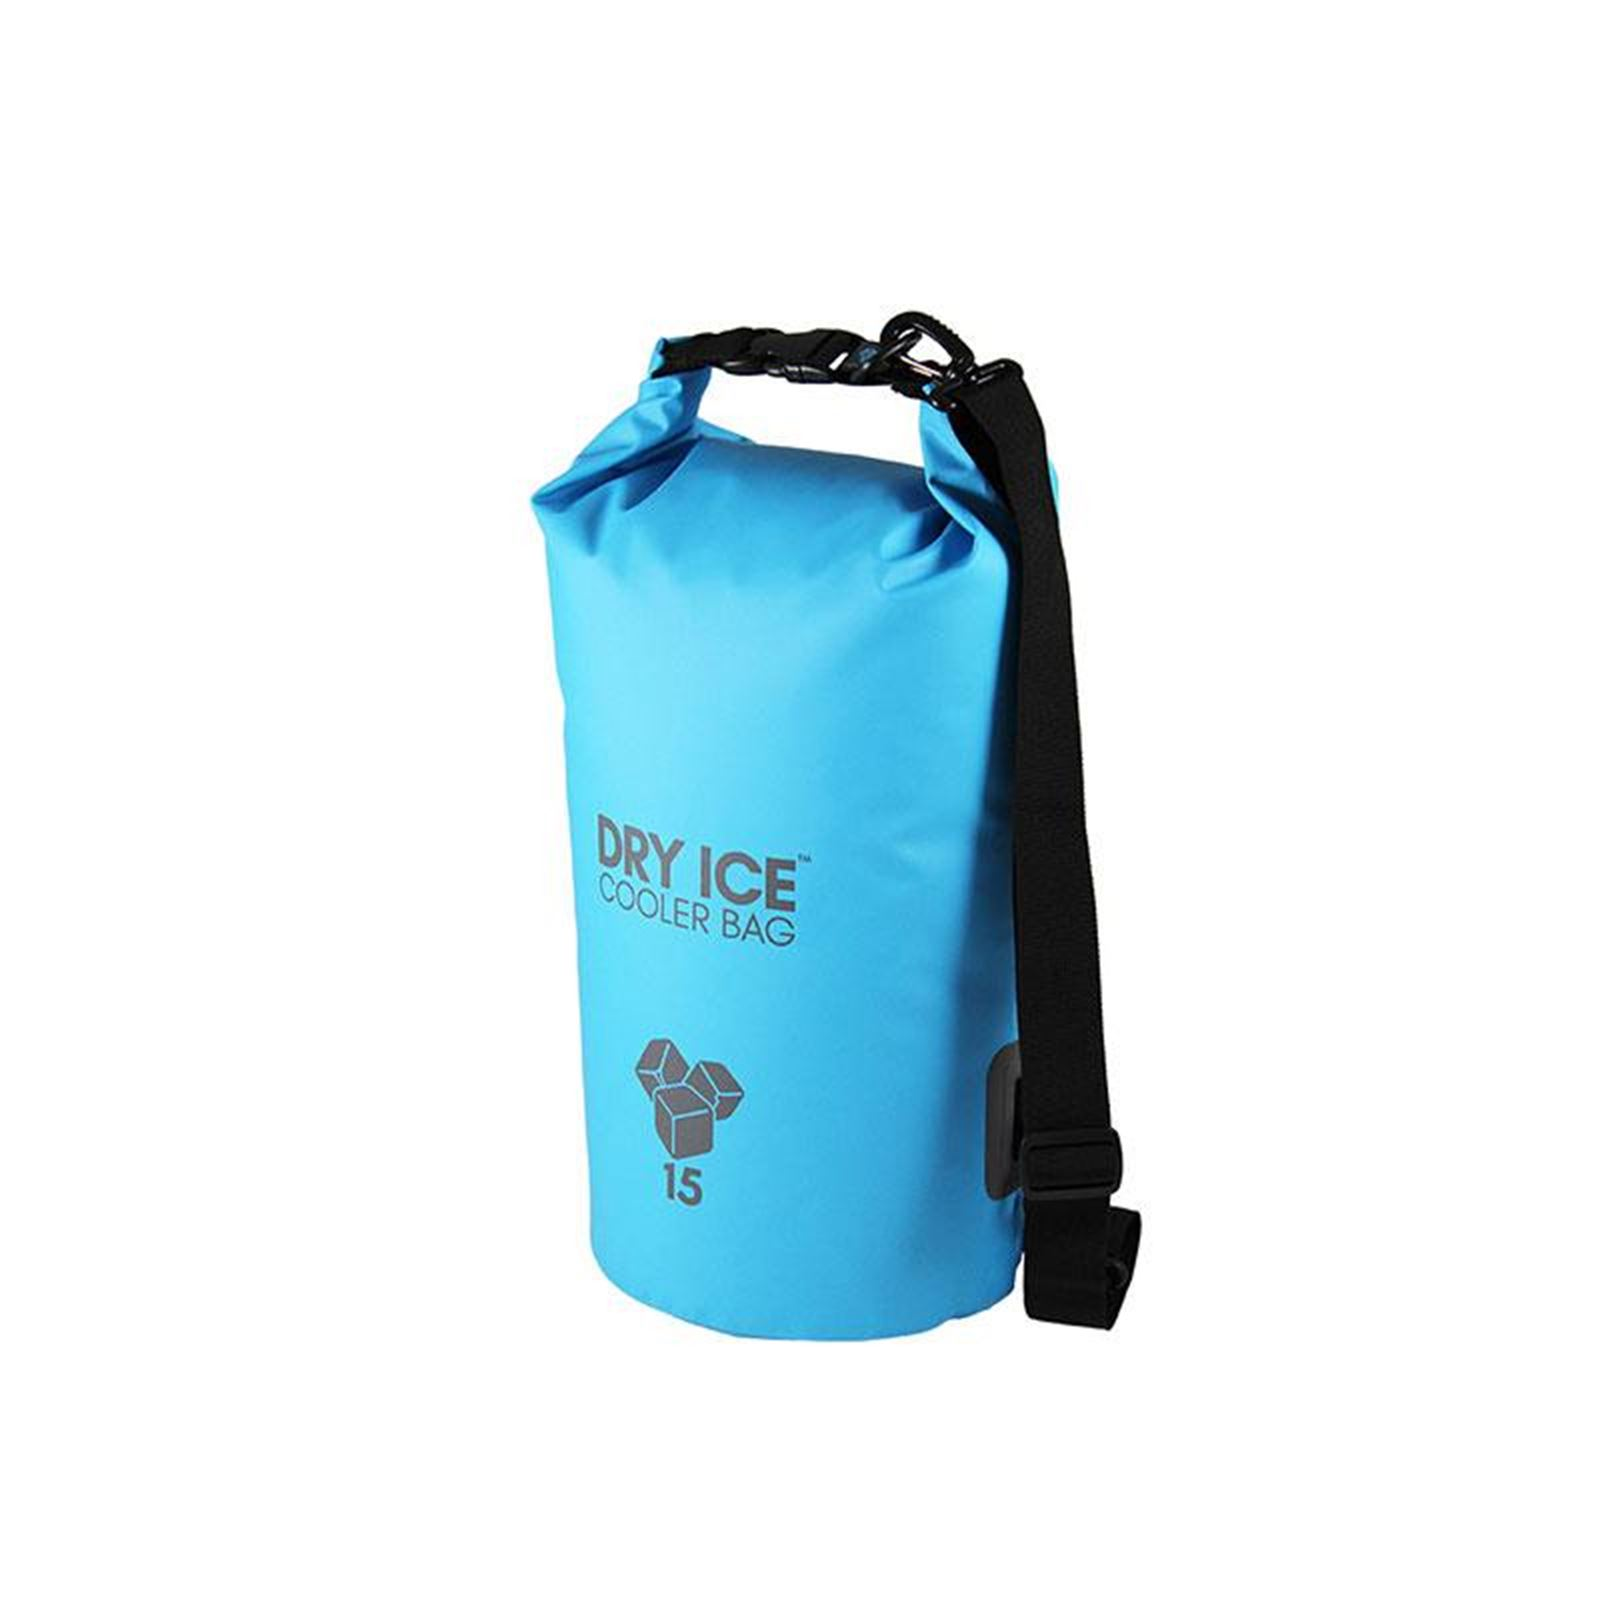 Dry Ice Cooler Bag 15 Lit - Turquoise